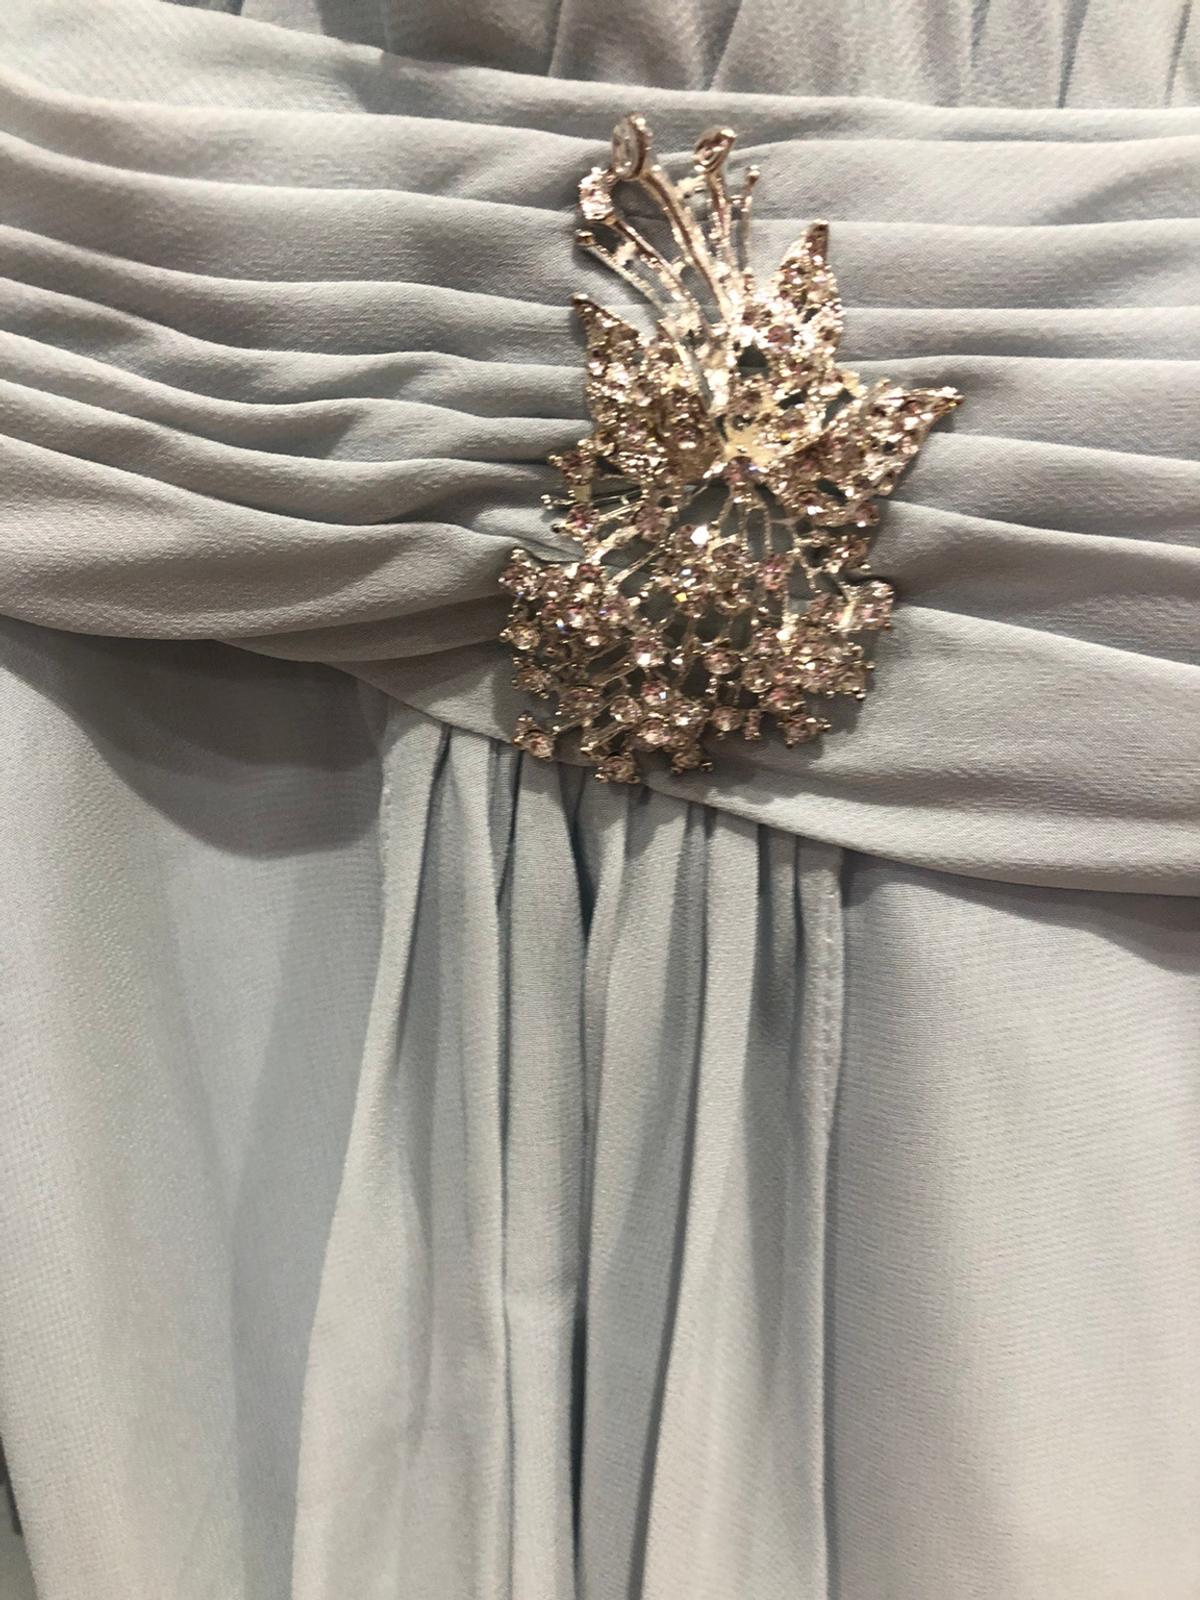 Brand new with tag size and colour shown on label photo. Comes complete with matching long chiffon jacket. Bargain price Original price is £115+ £20 shipping Selling at a bargain price